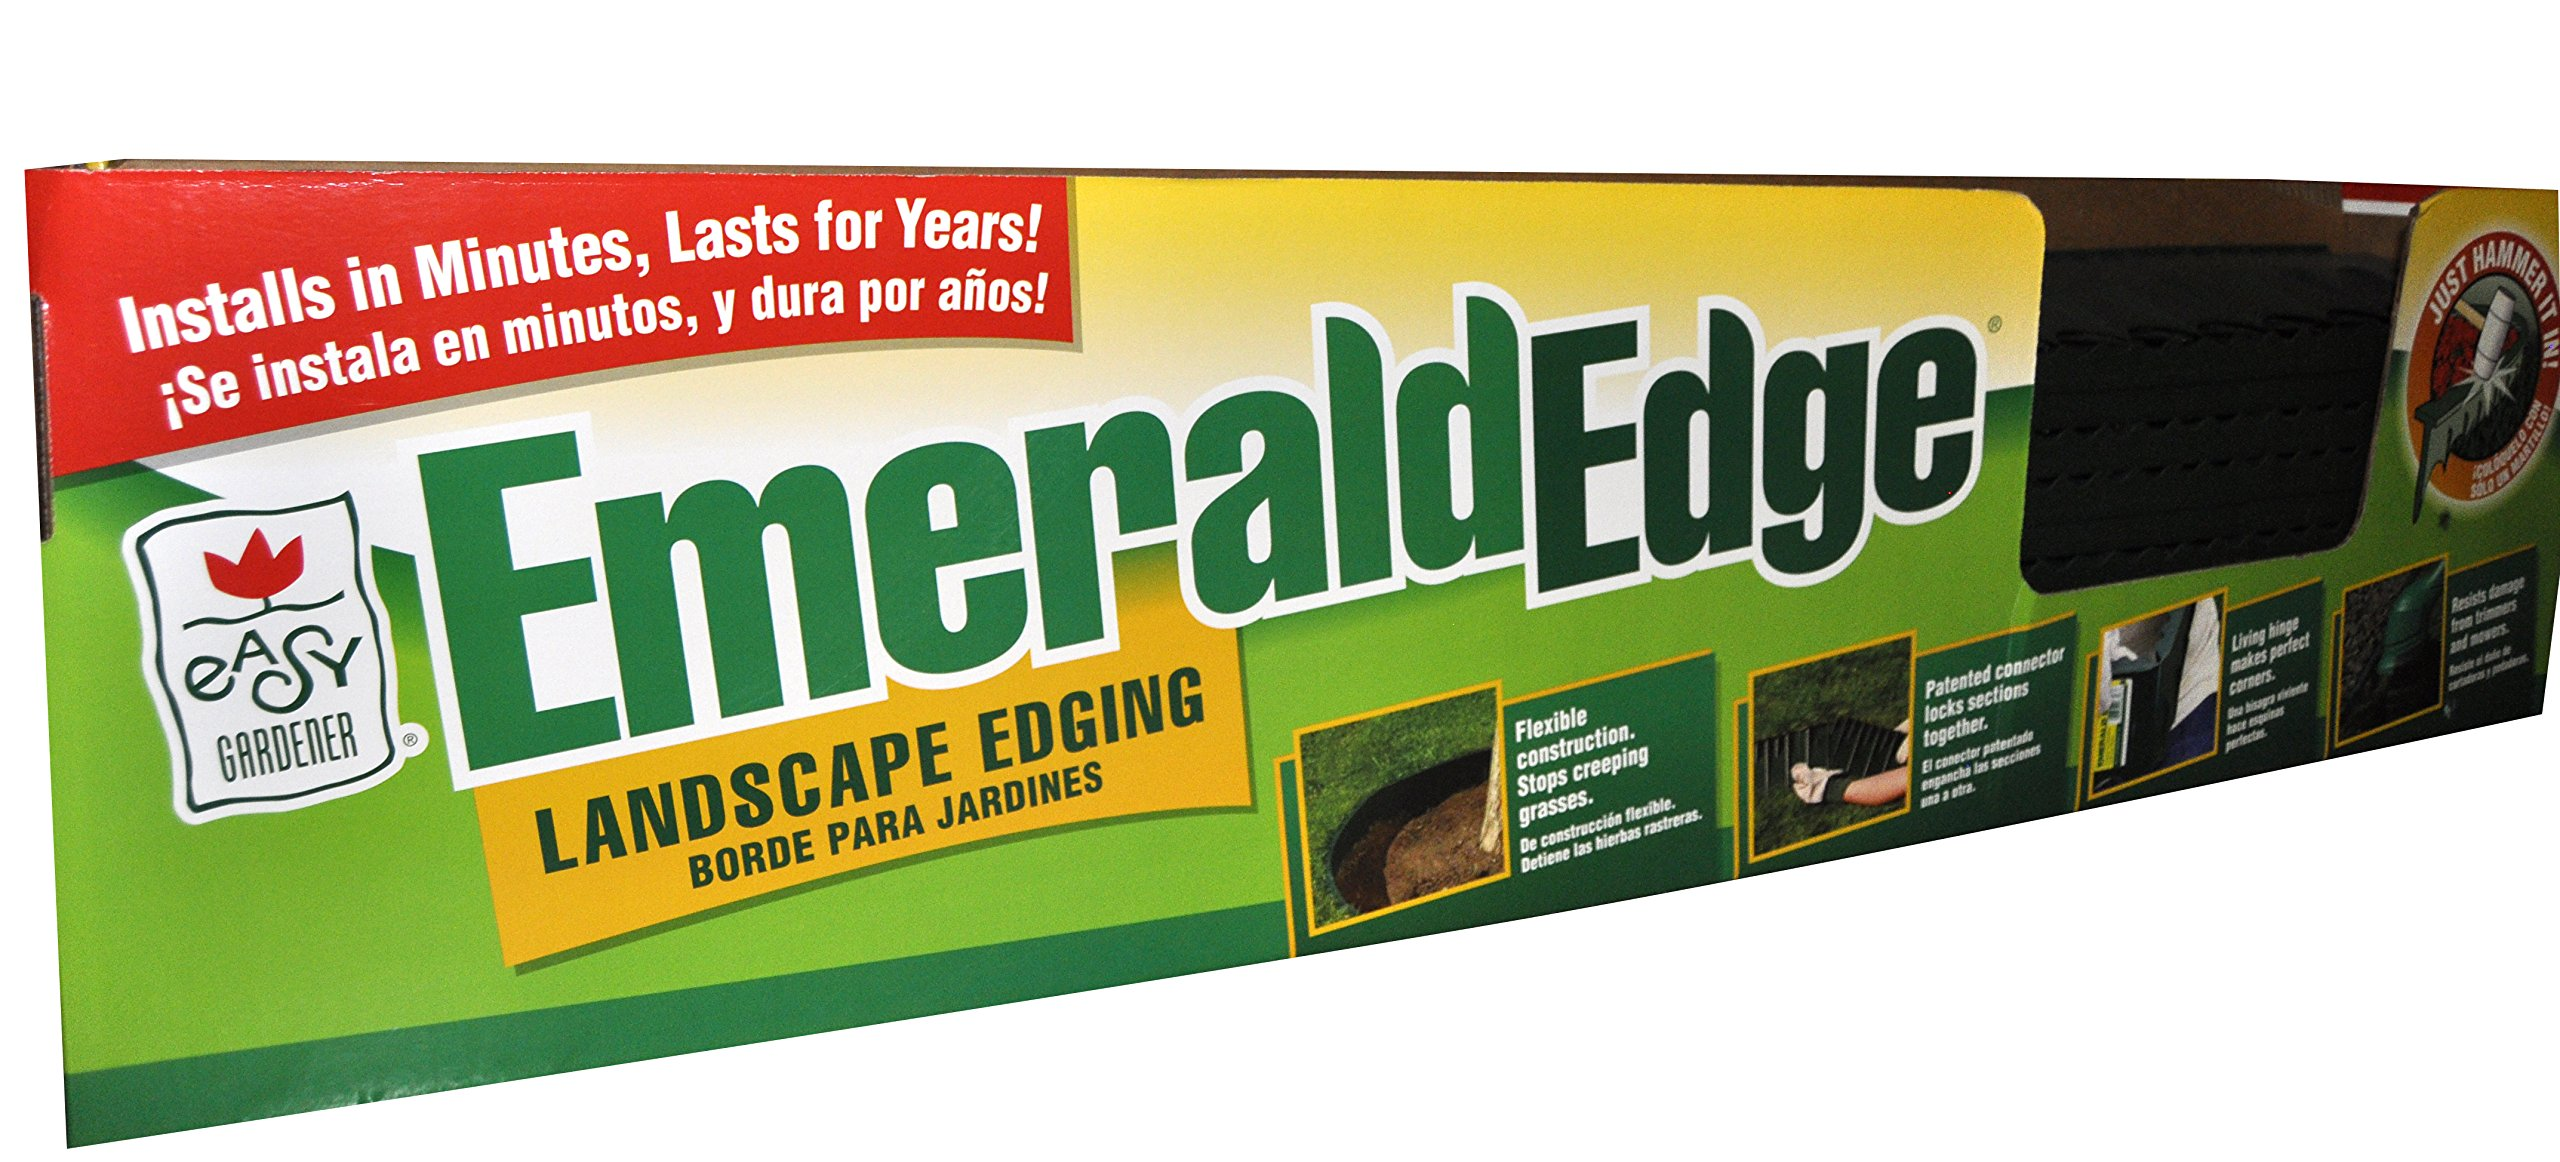 Emerald Edge Interlocking Landscape Border Edging (Pound-In, Easy Install) Green 4 feet x 5 inches, 24 Sections (96 Feet)